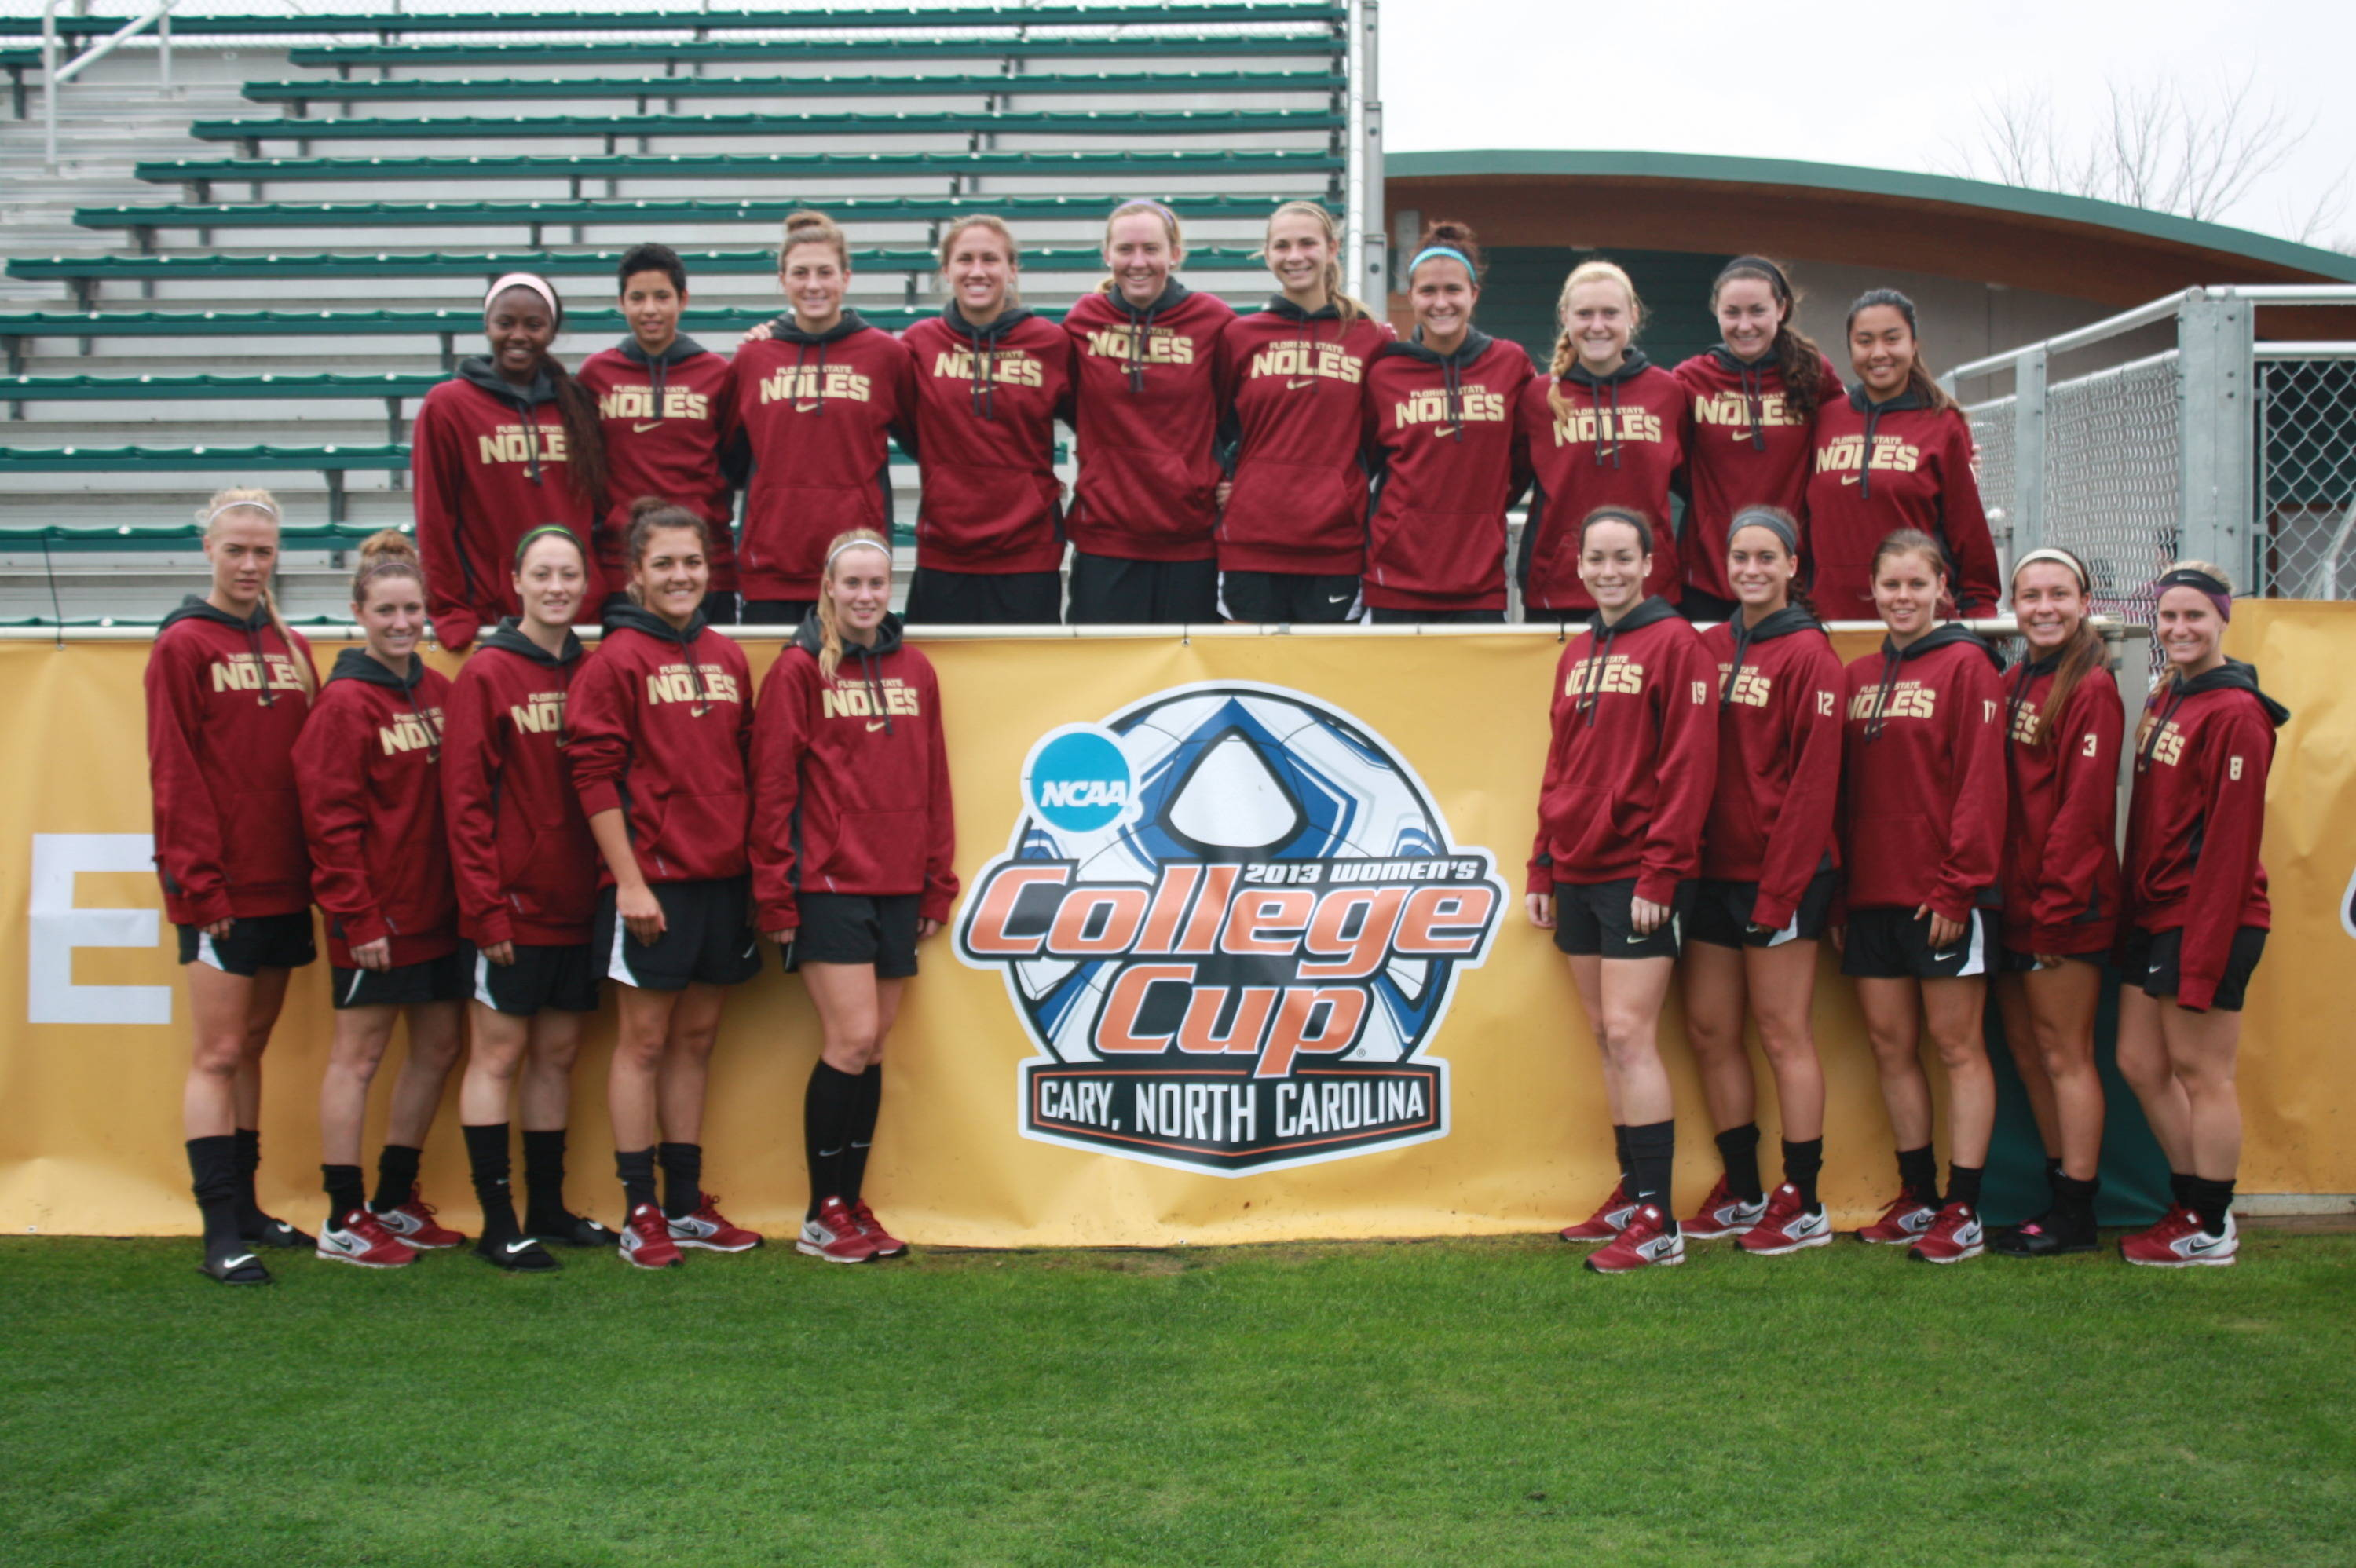 Florida State at the 2013 College Cup.